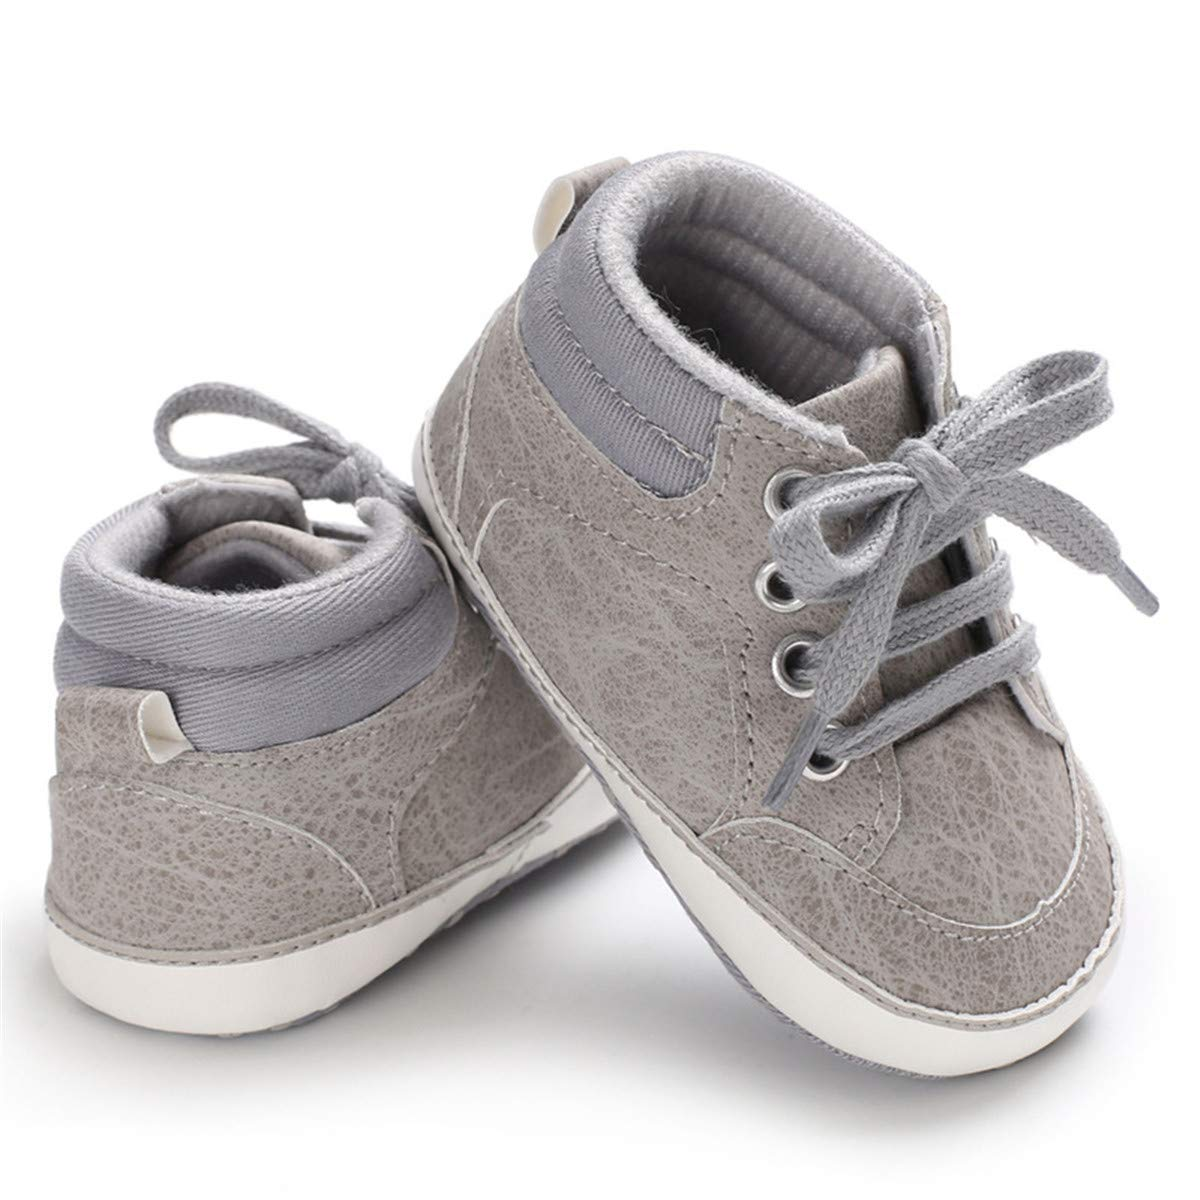 Baby Girls Boys Canvas Shoes Soft Sole Toddler First Walker Infant High-Top Ankle Sneakers Newborn Prewalker Crib Shoes